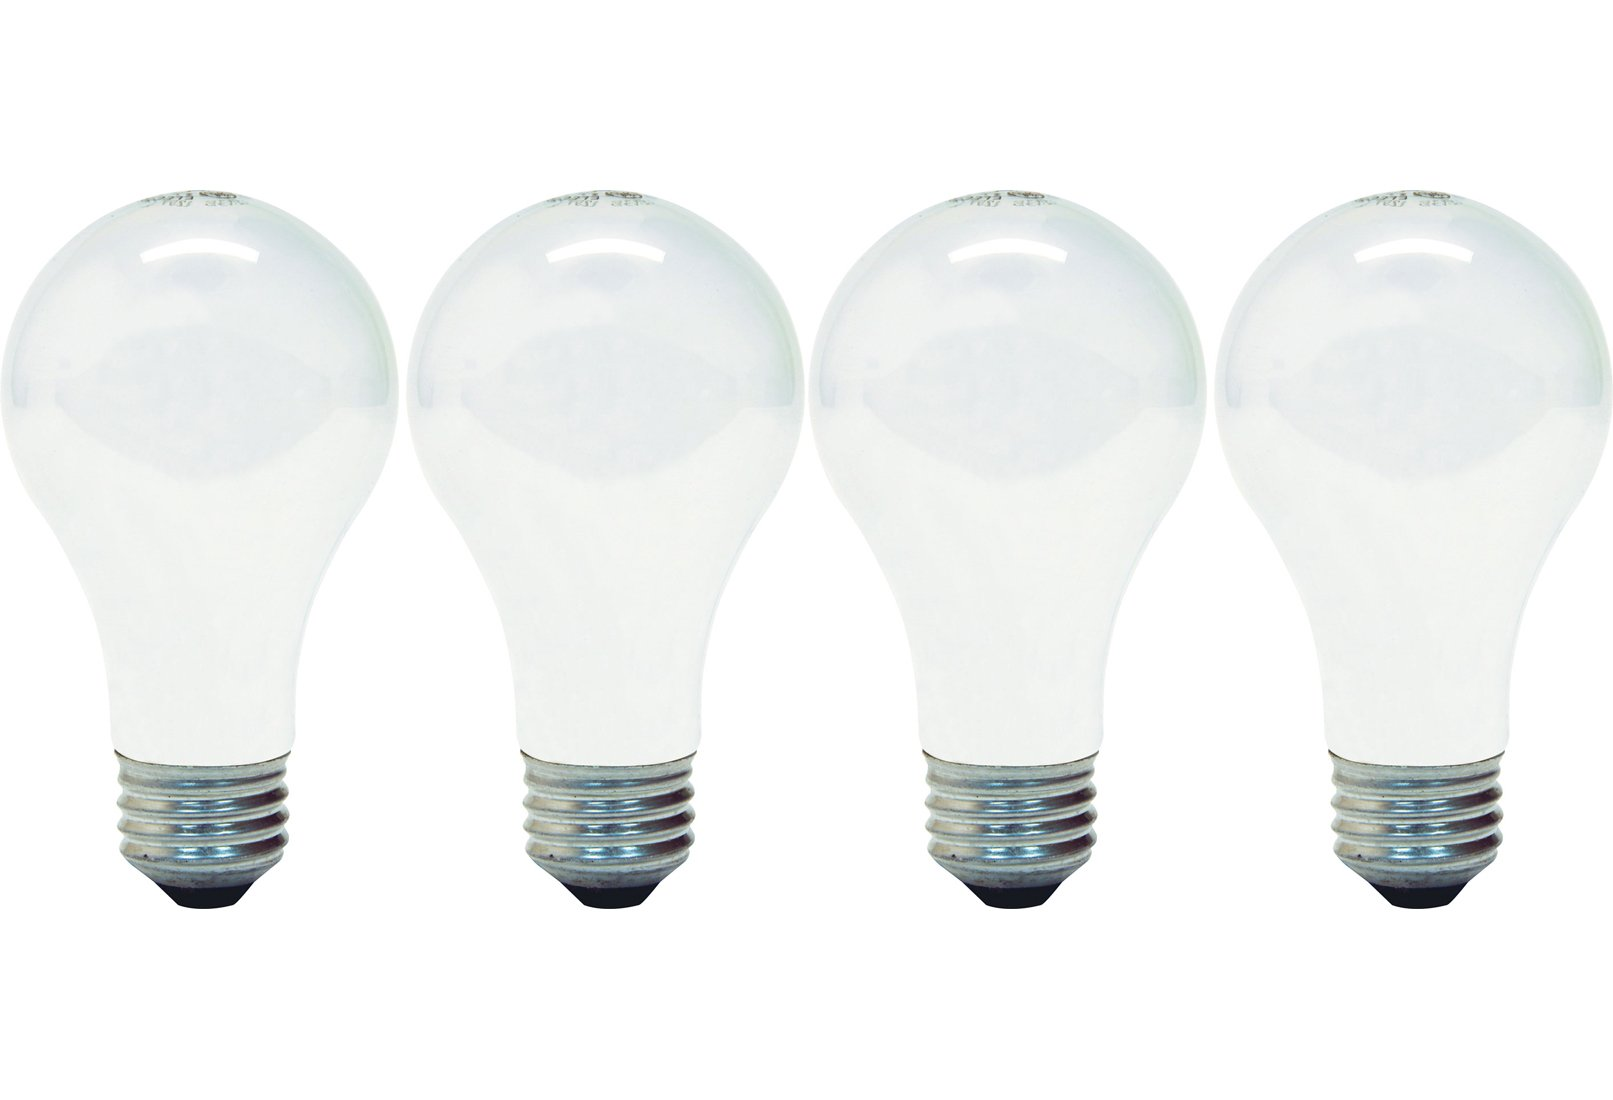 GE Lighting 66247 Energy-Efficient Soft White 43-Watt, 620-Lumen A19 Light Bulb with Medium Base, 4-Pack